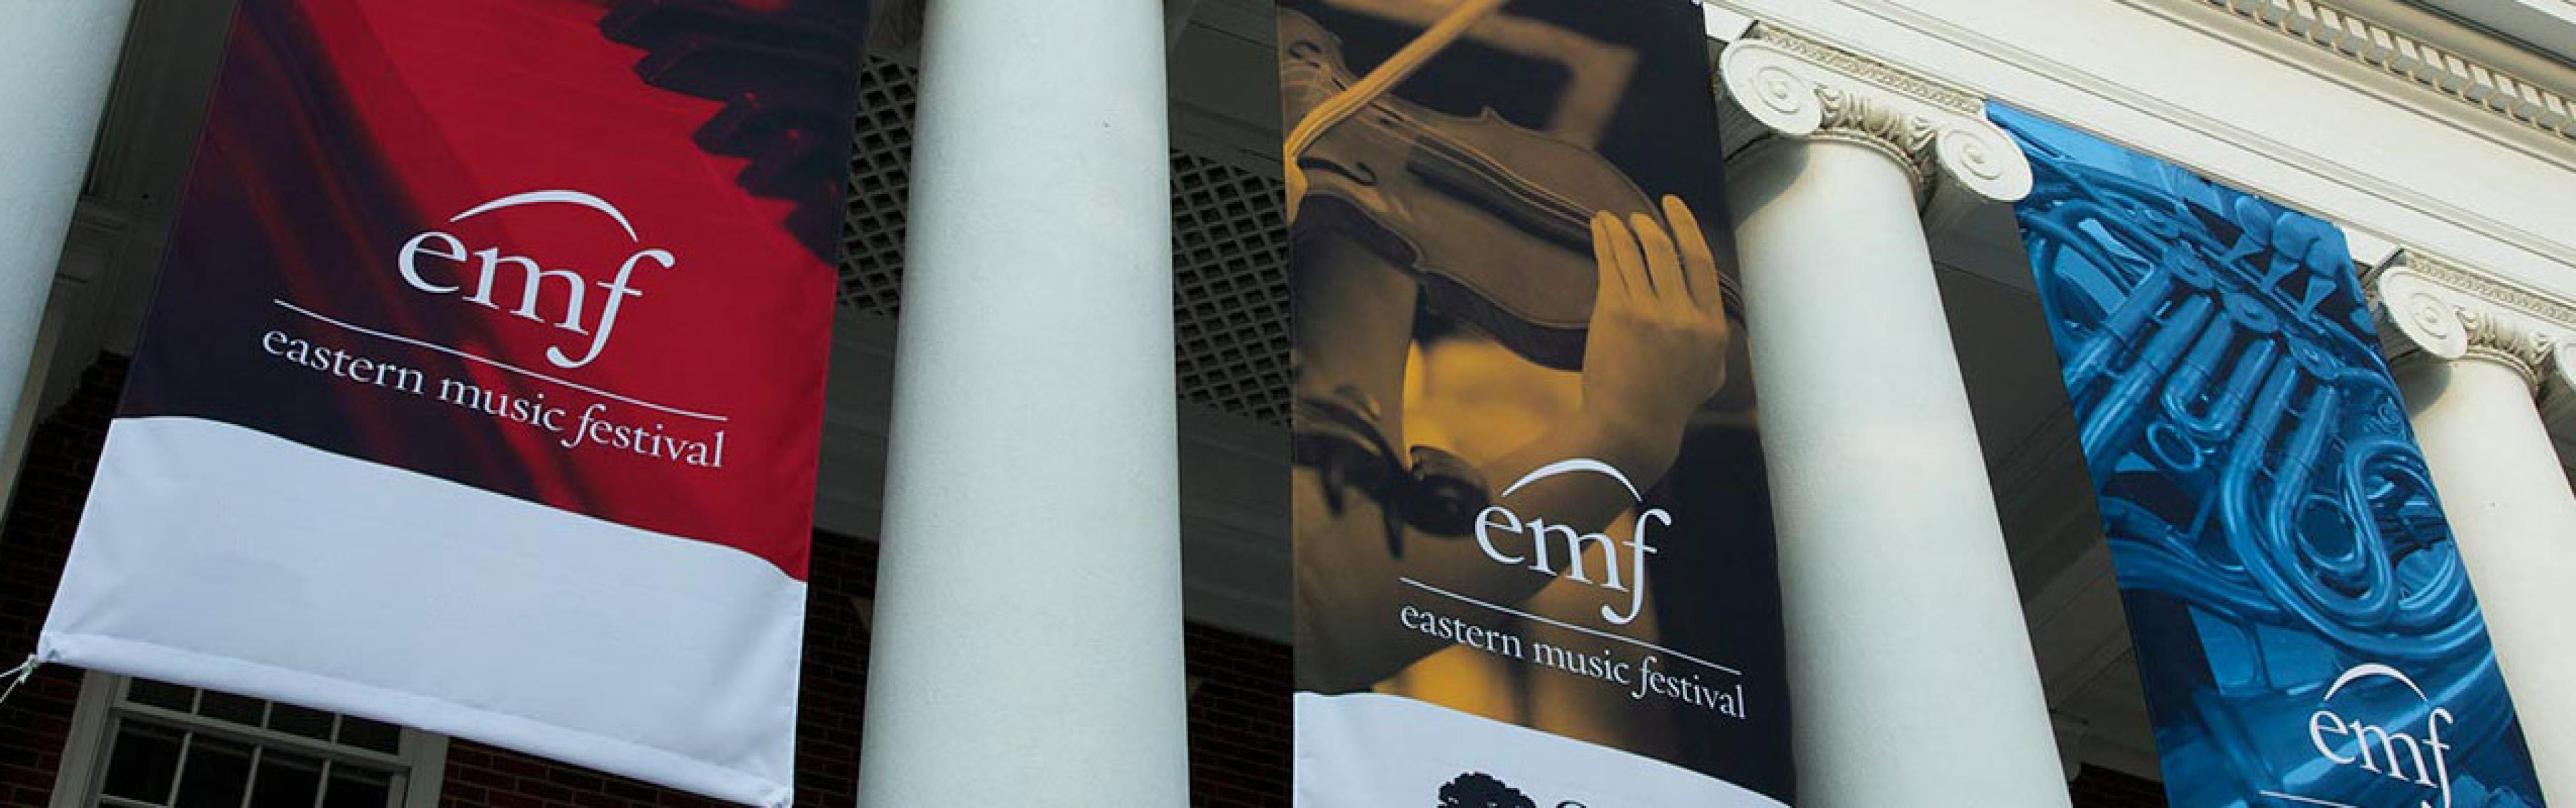 Banners hanging at one of the Eastern Music Festival venuea